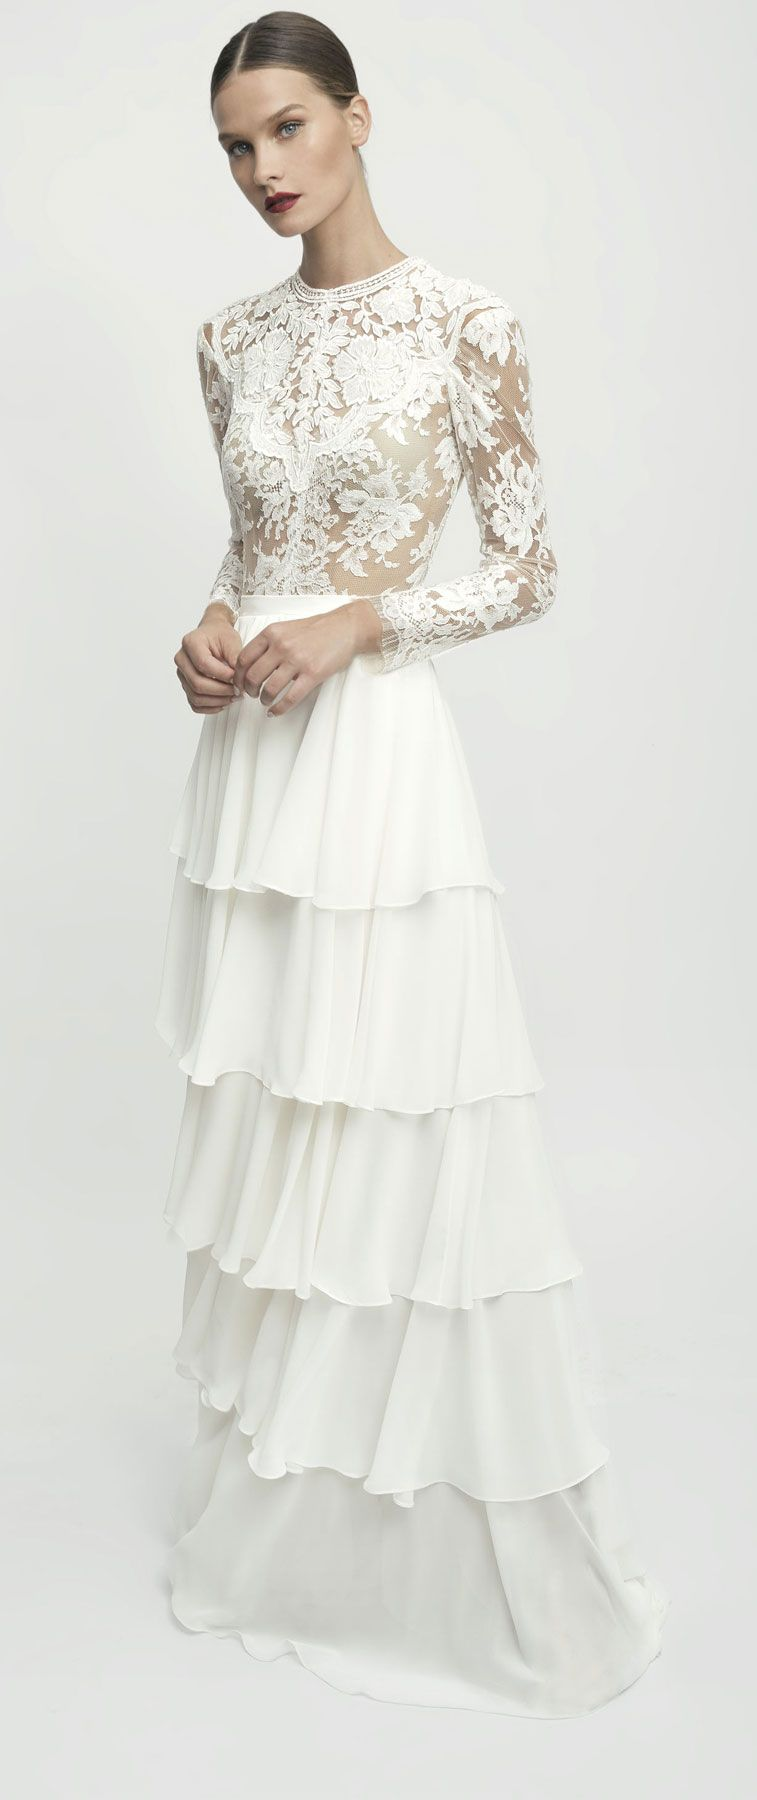 Bridal long sleeves layered skirt a line wedding dress #weddingdress #wedding #weddinggown #bridedress